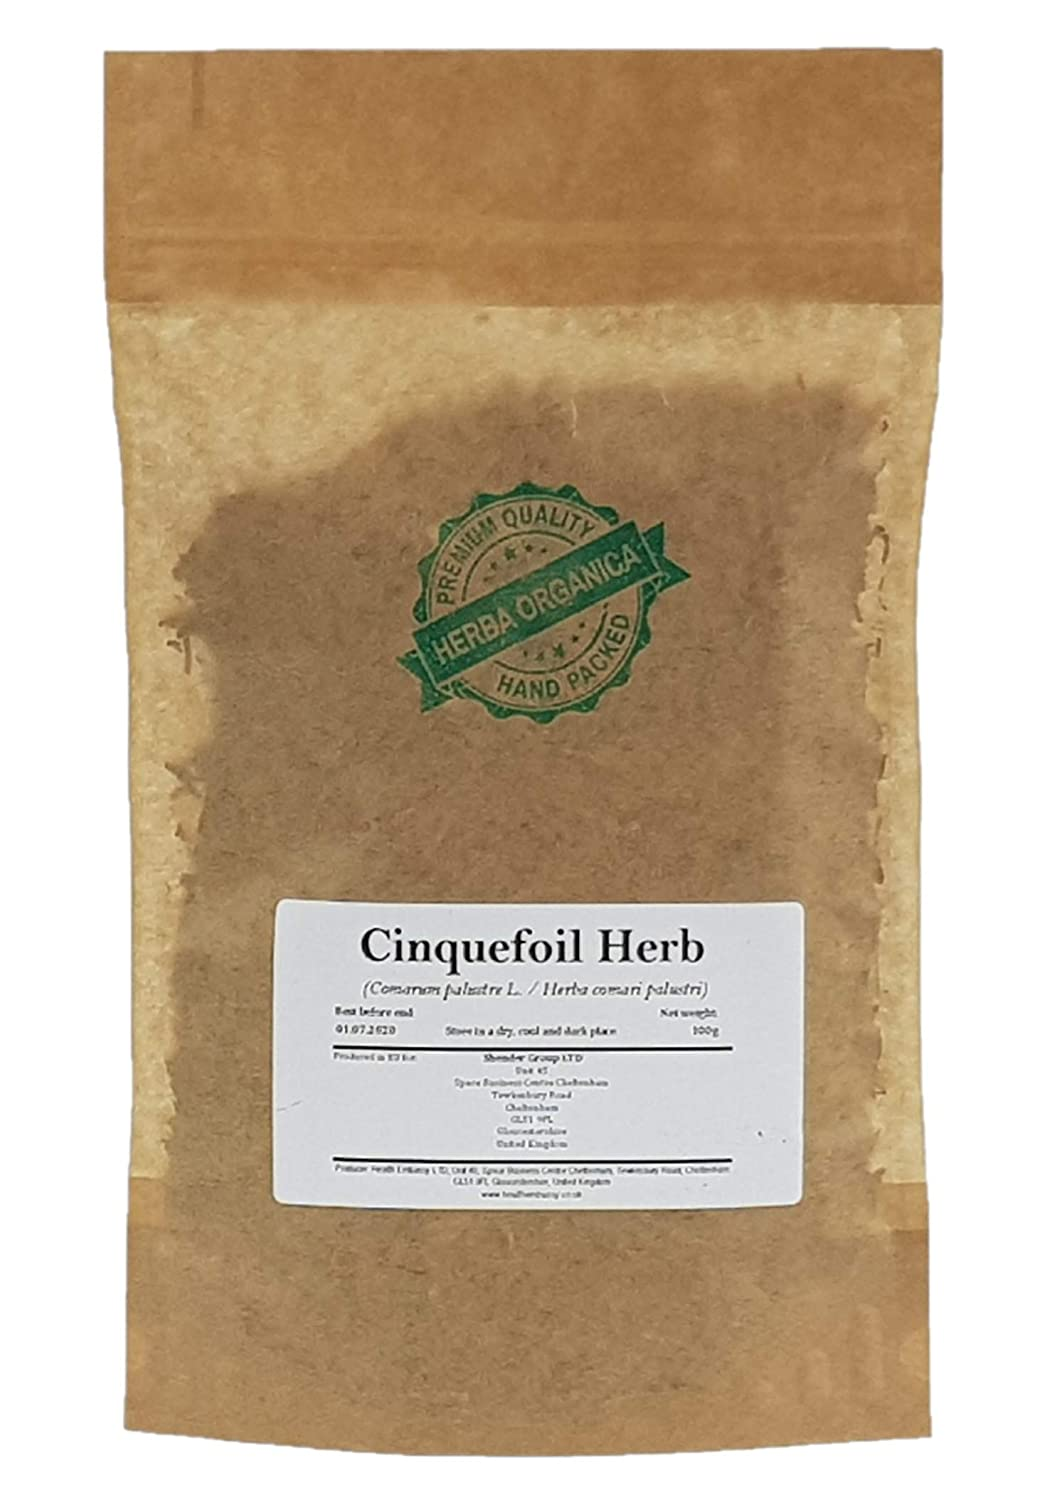 Cinquefoil Free shipping Gorgeous anywhere in the nation Herb - Comarum Palustre L Organica Purple M Herba #